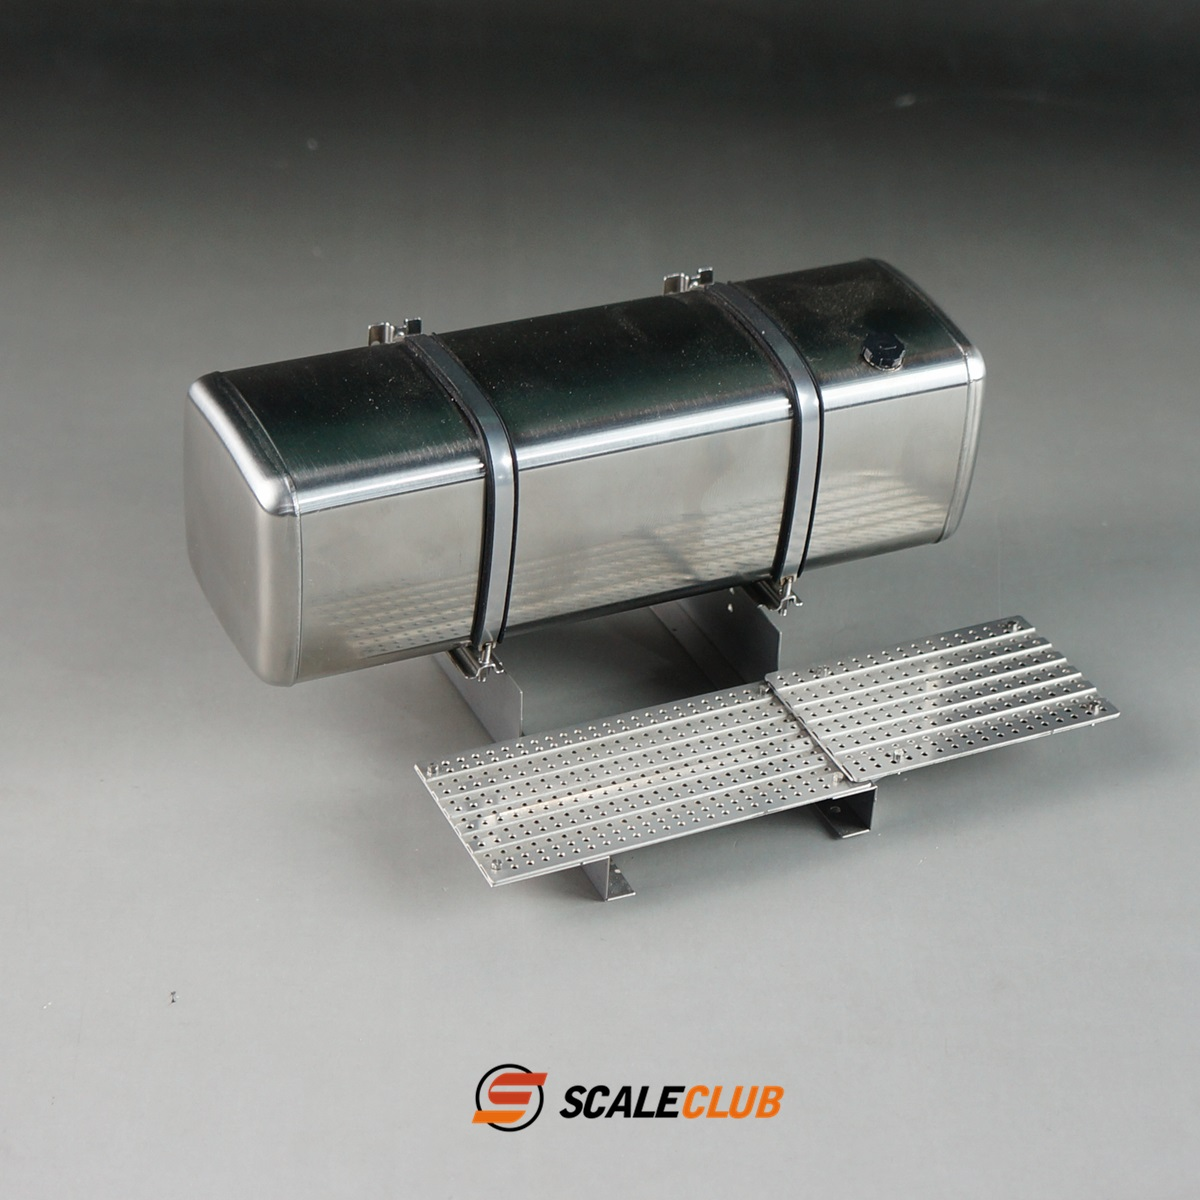 SCALECLUB  1/14 Universal  Battery Receiving of Fuel Tank Working Pedal Platform